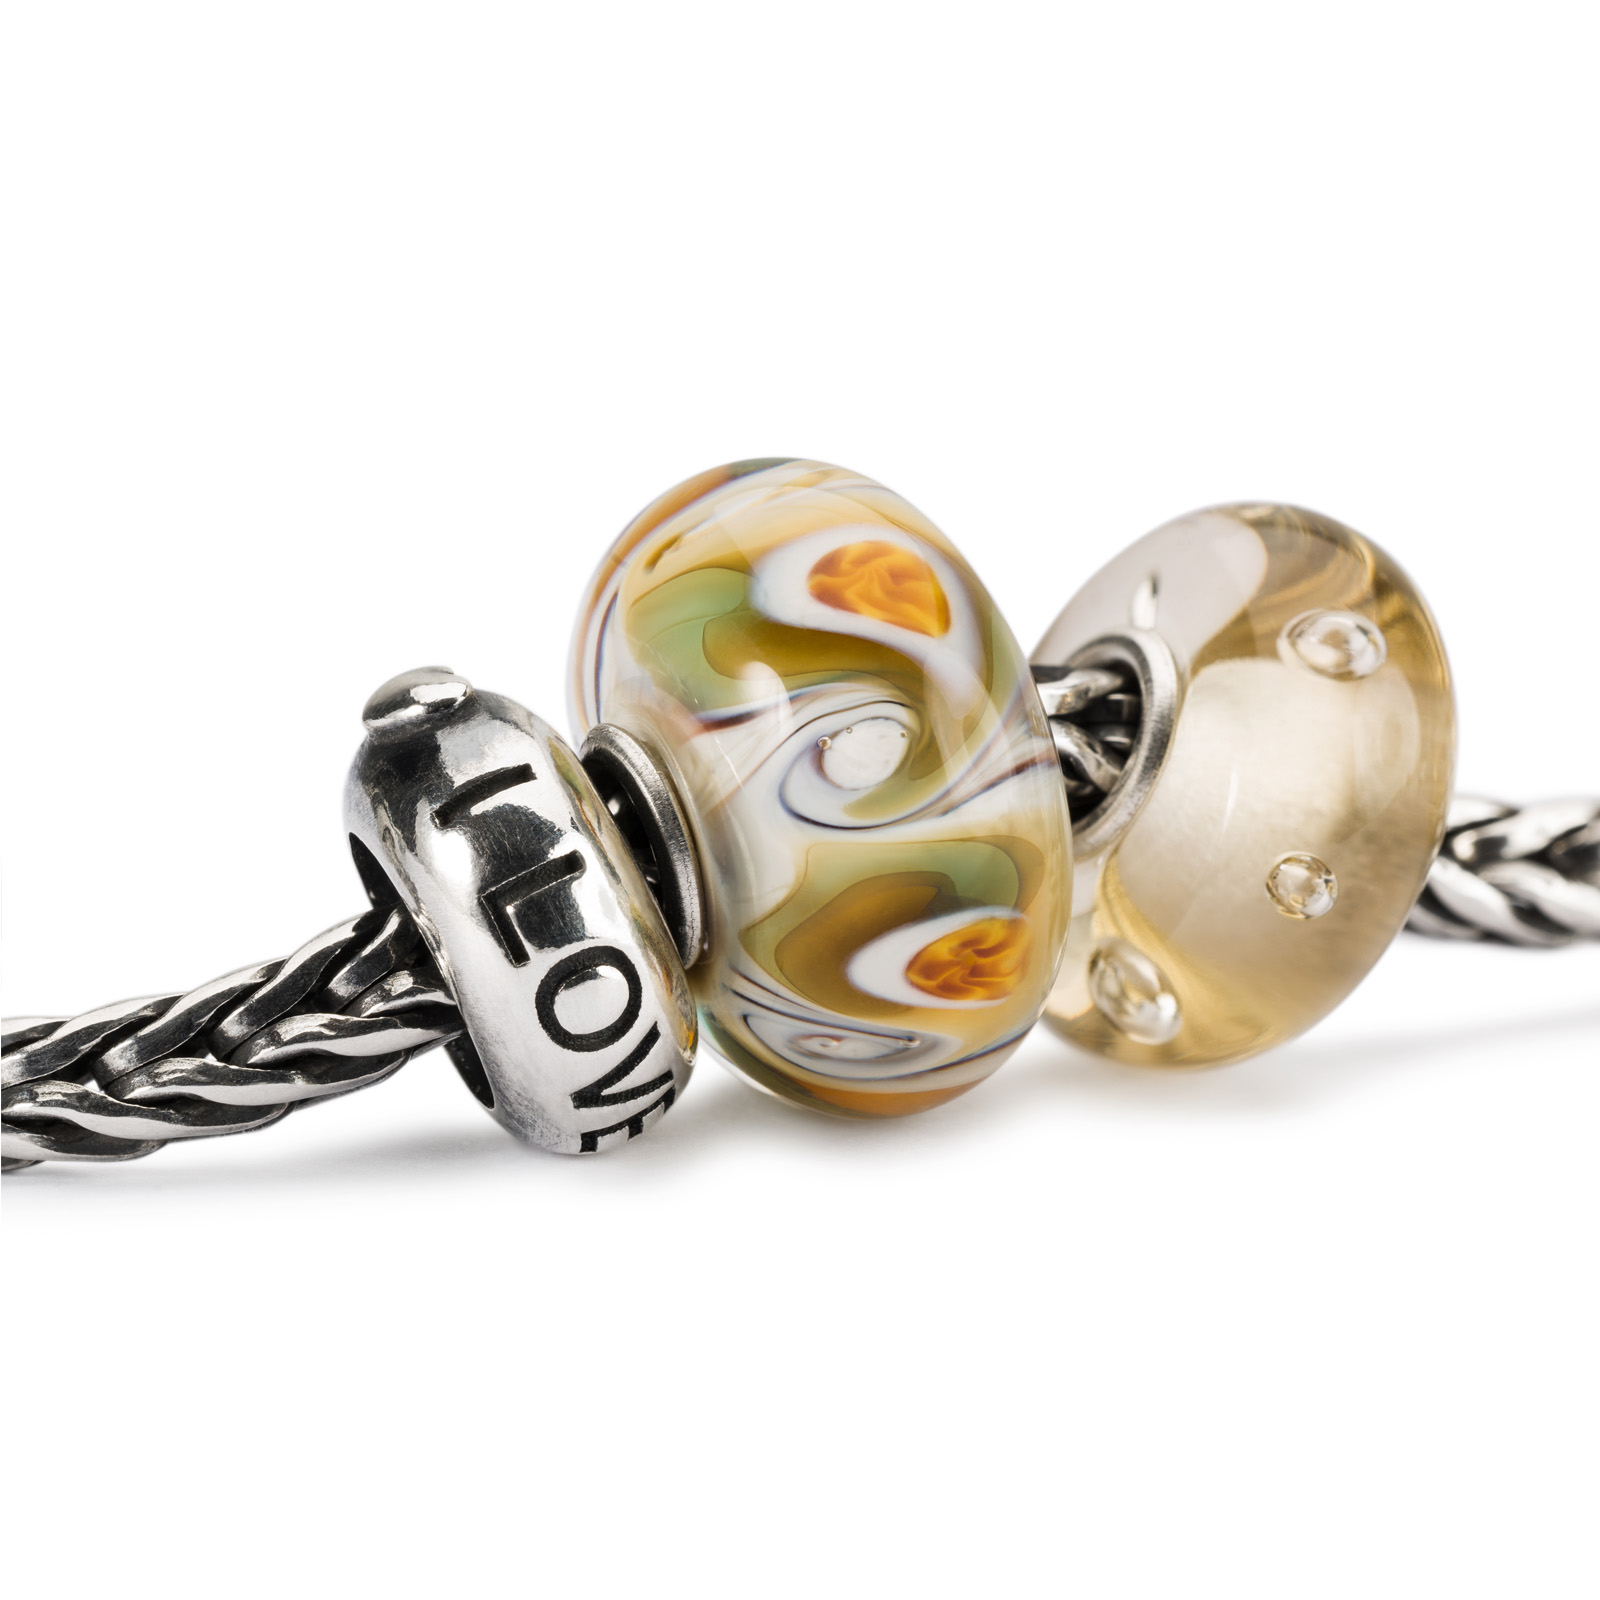 Trollbeads - New Wisdom Bracelet Close Up 2